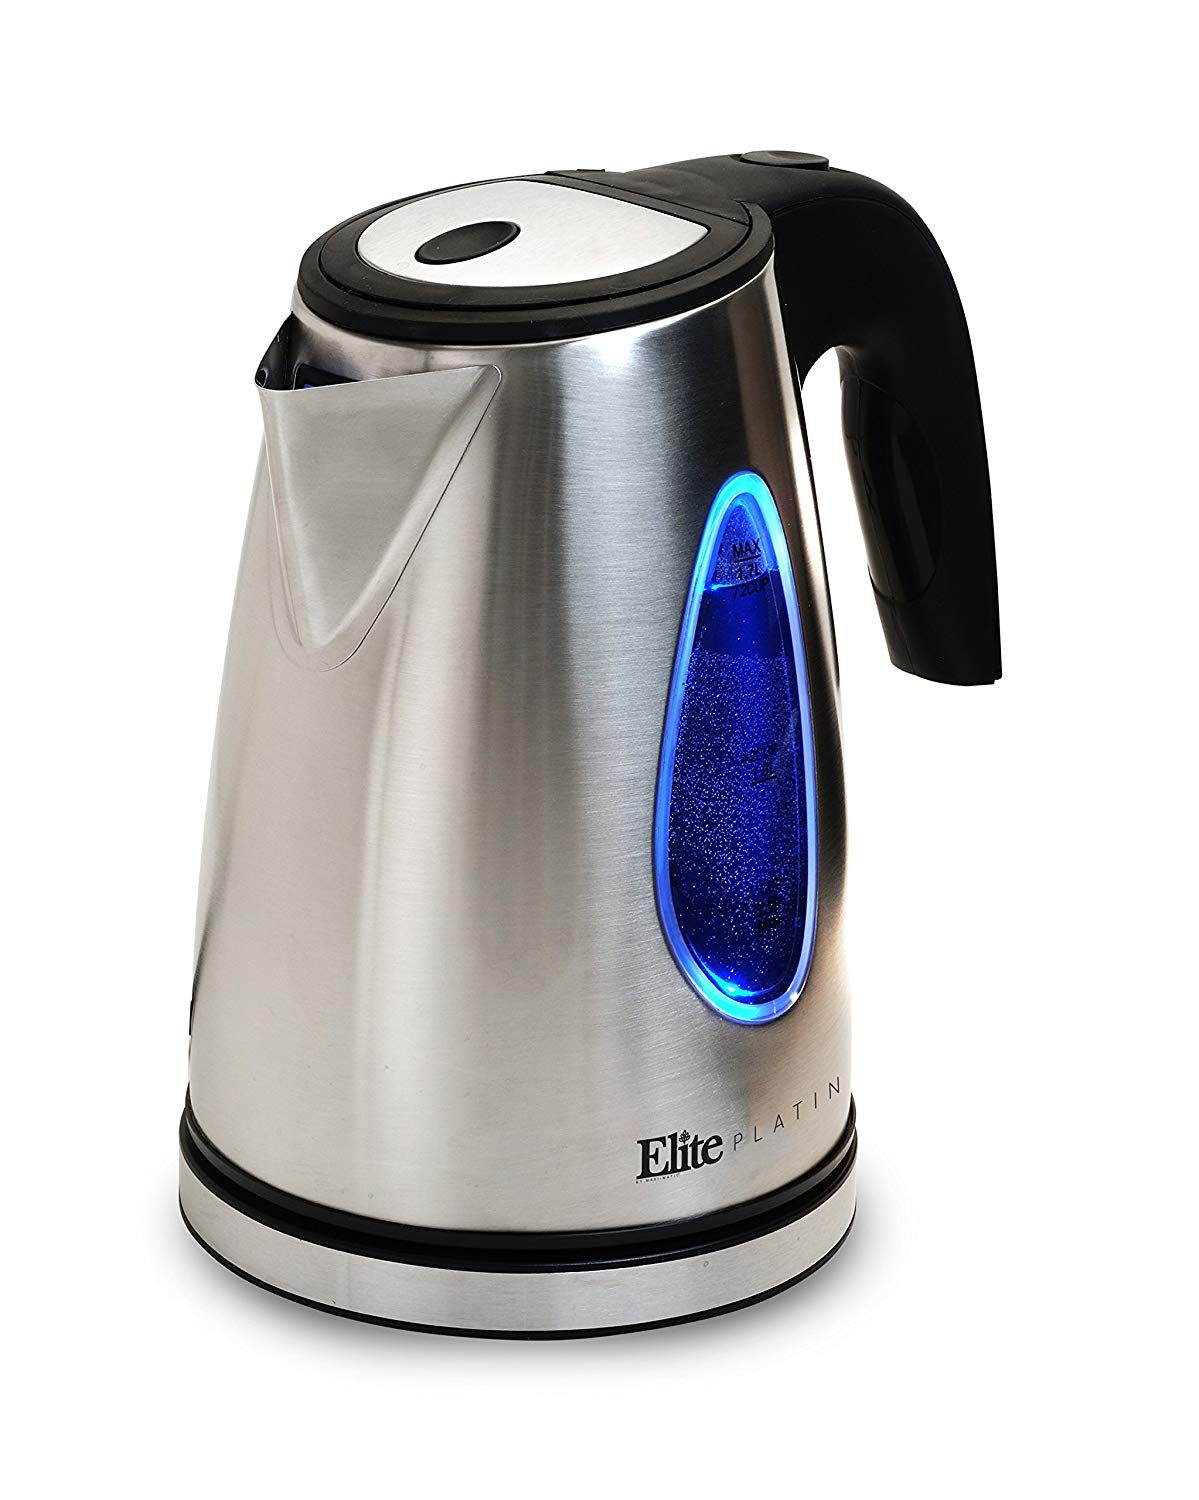 ELITE PLATINUM EKT-1271  1.7L CORDLESS ELECTRIC GLASS KETTLE